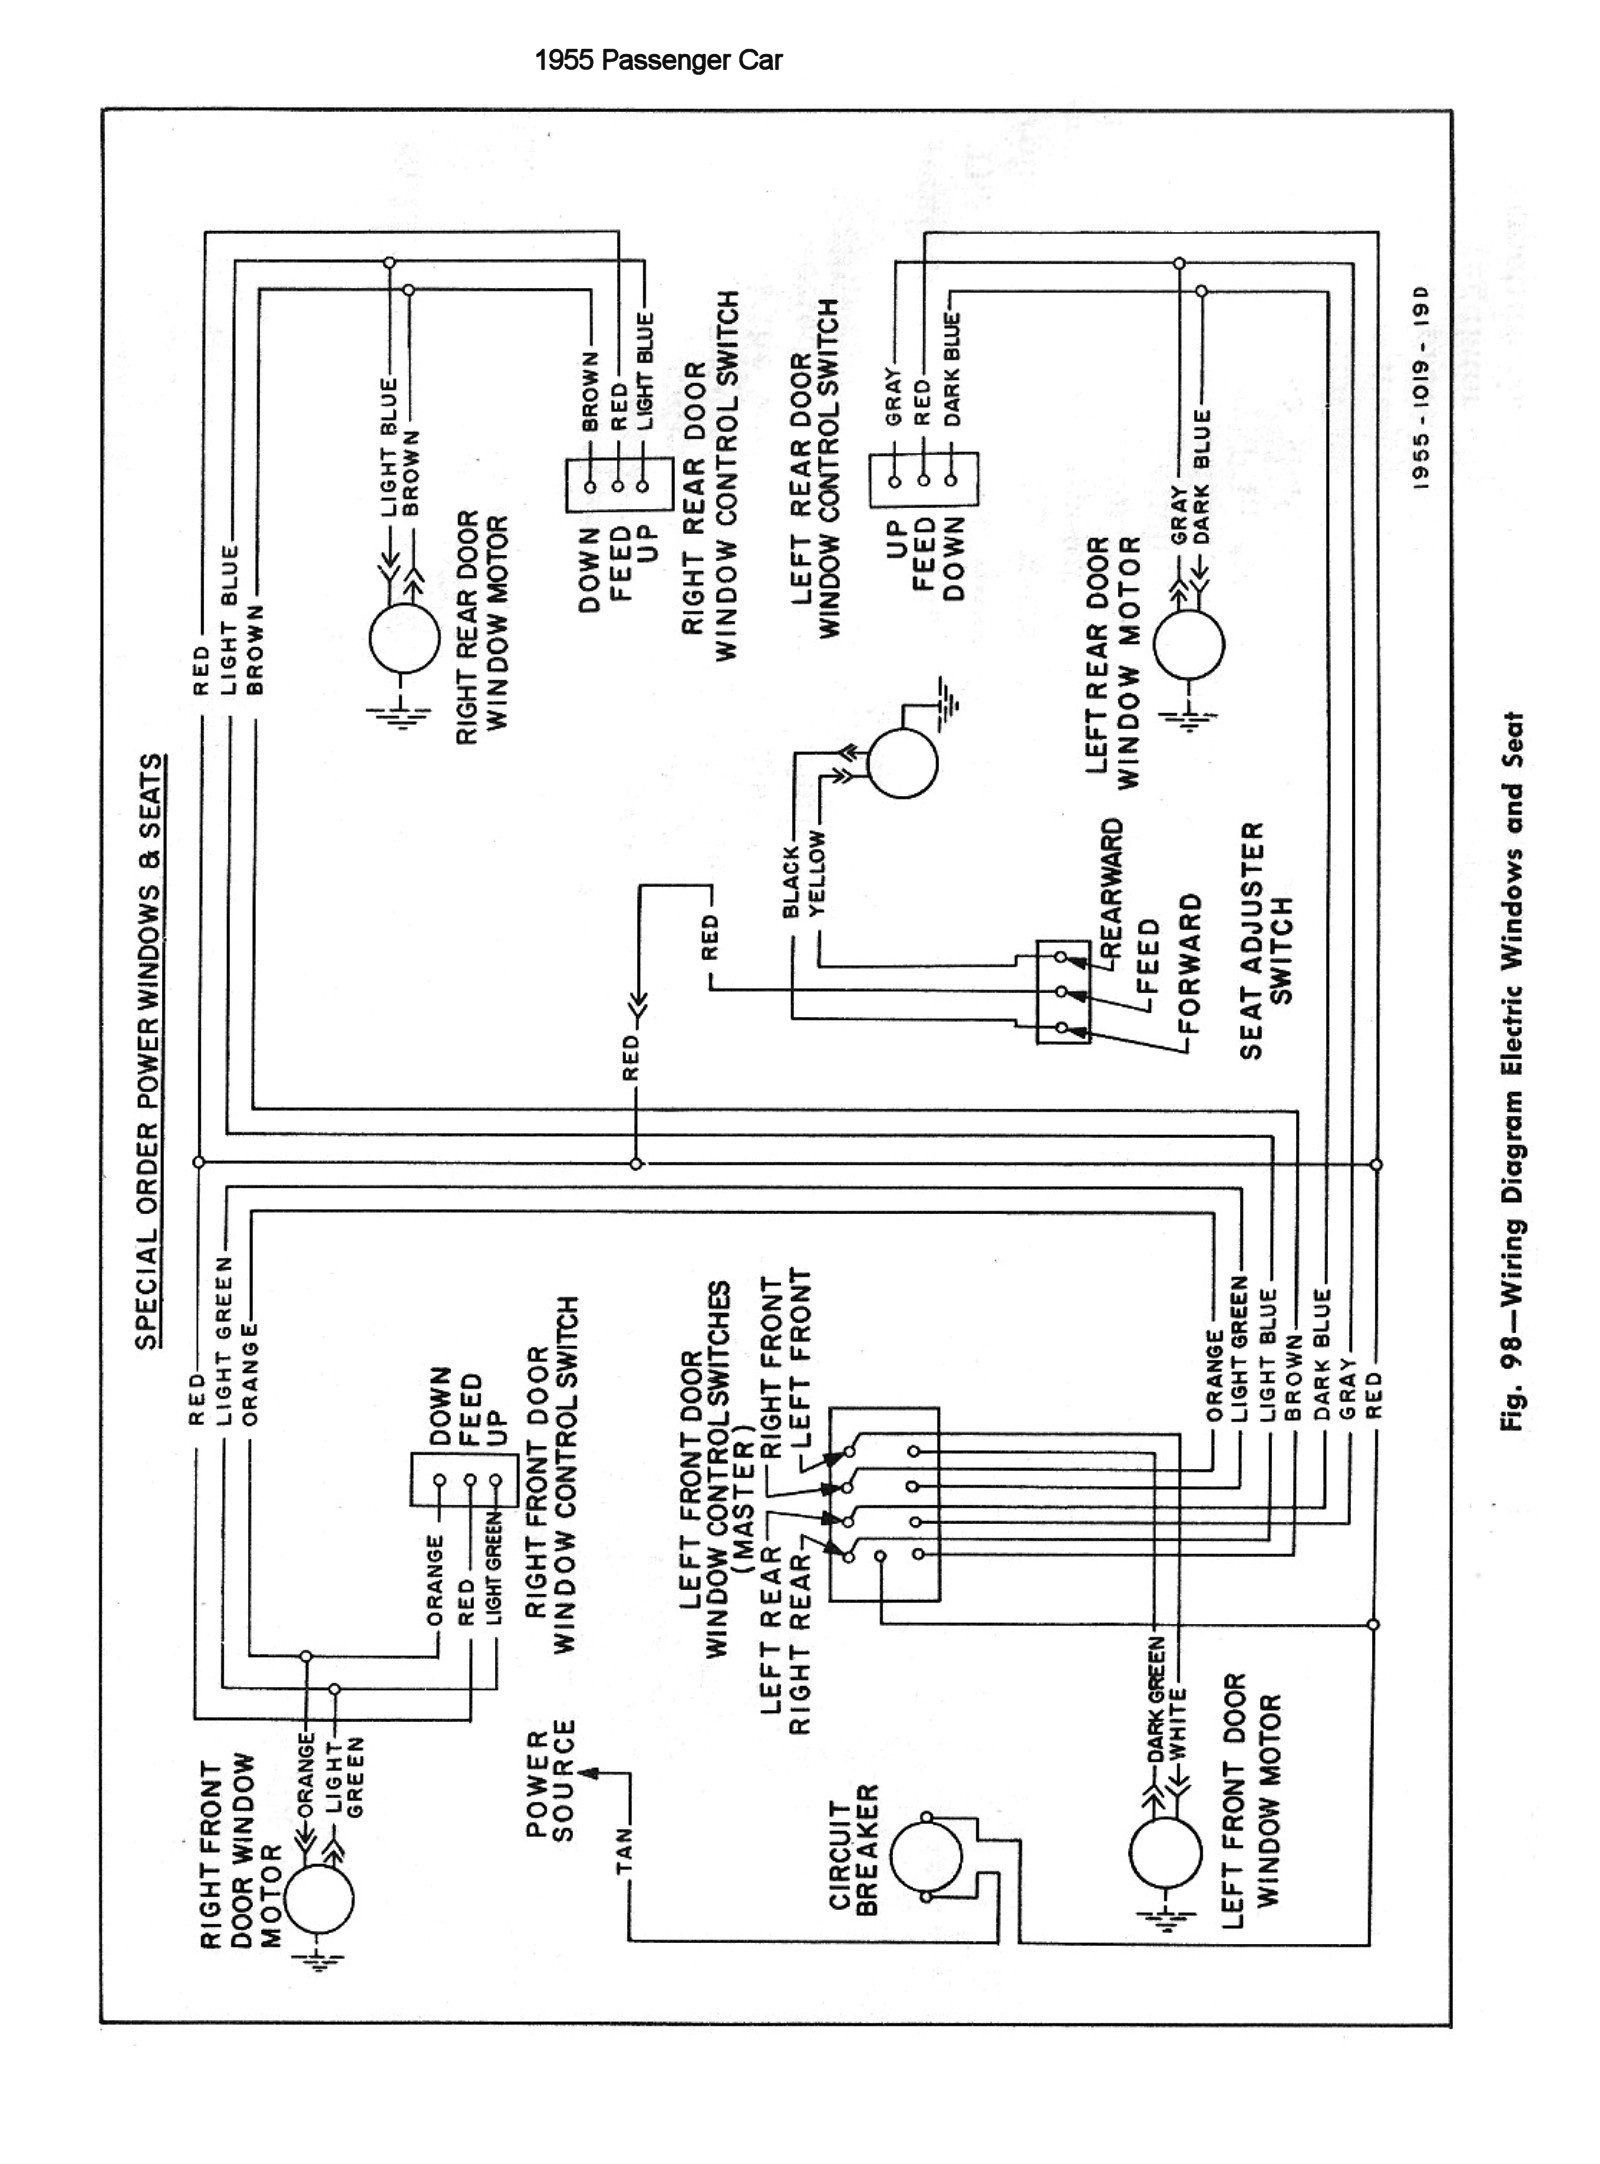 hight resolution of 1955 chevy turn signal wiring diagram wiringdiagram org1955 chevy turn signal wiring diagram wiringdiagram org